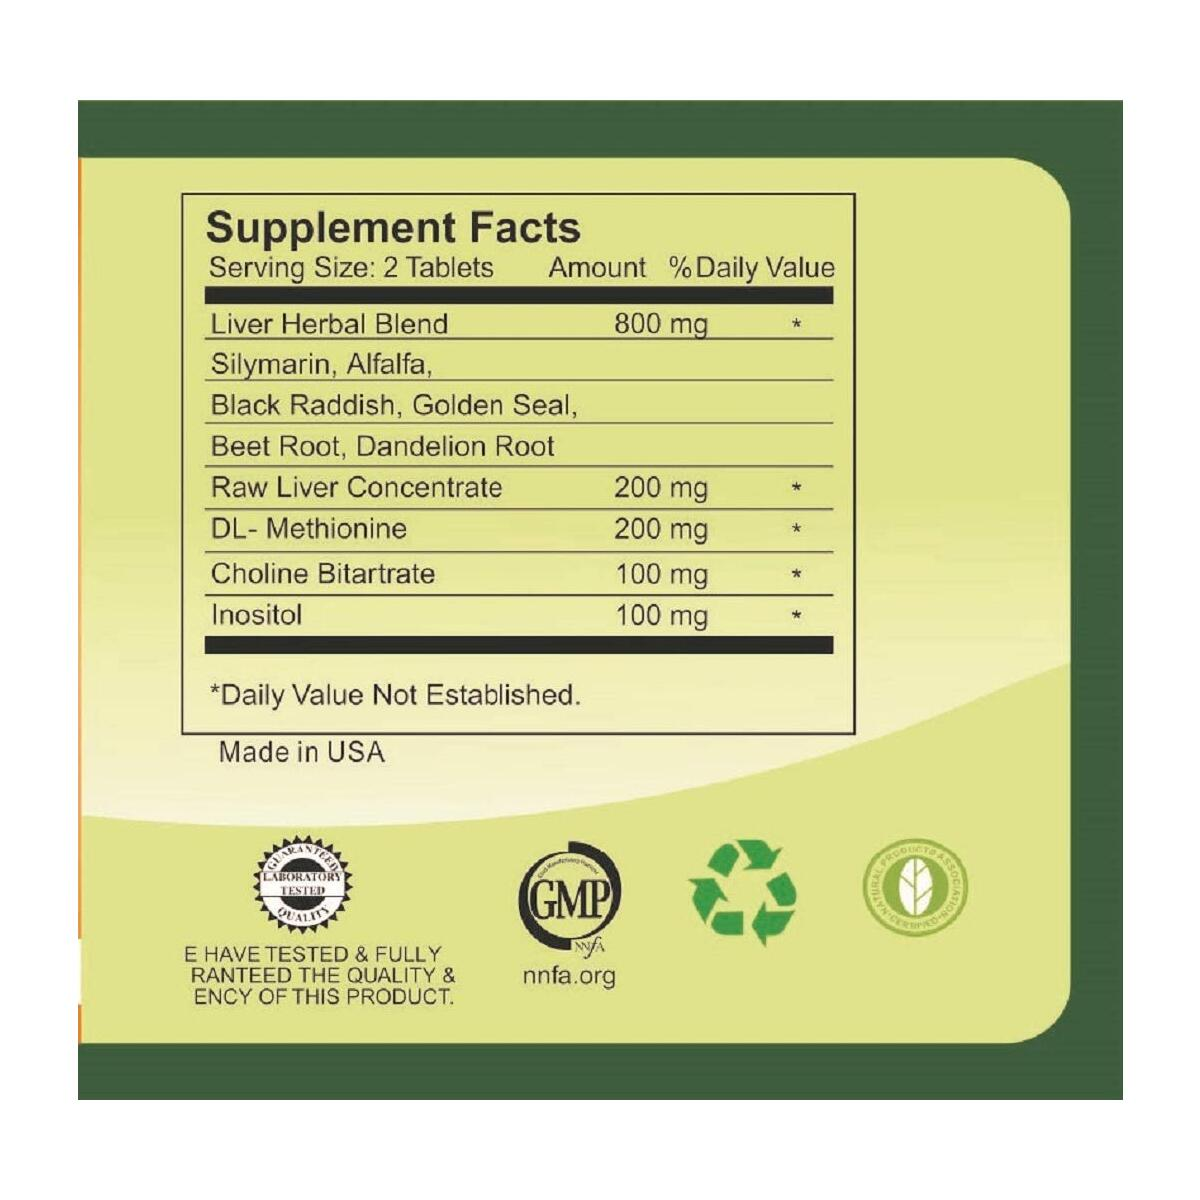 (5 Count, 25% Off) Esmond Natural: Pro Liver (Supports Liver Function), GMP, Natural Product Assn Certified, Made in USA-400 Tablets